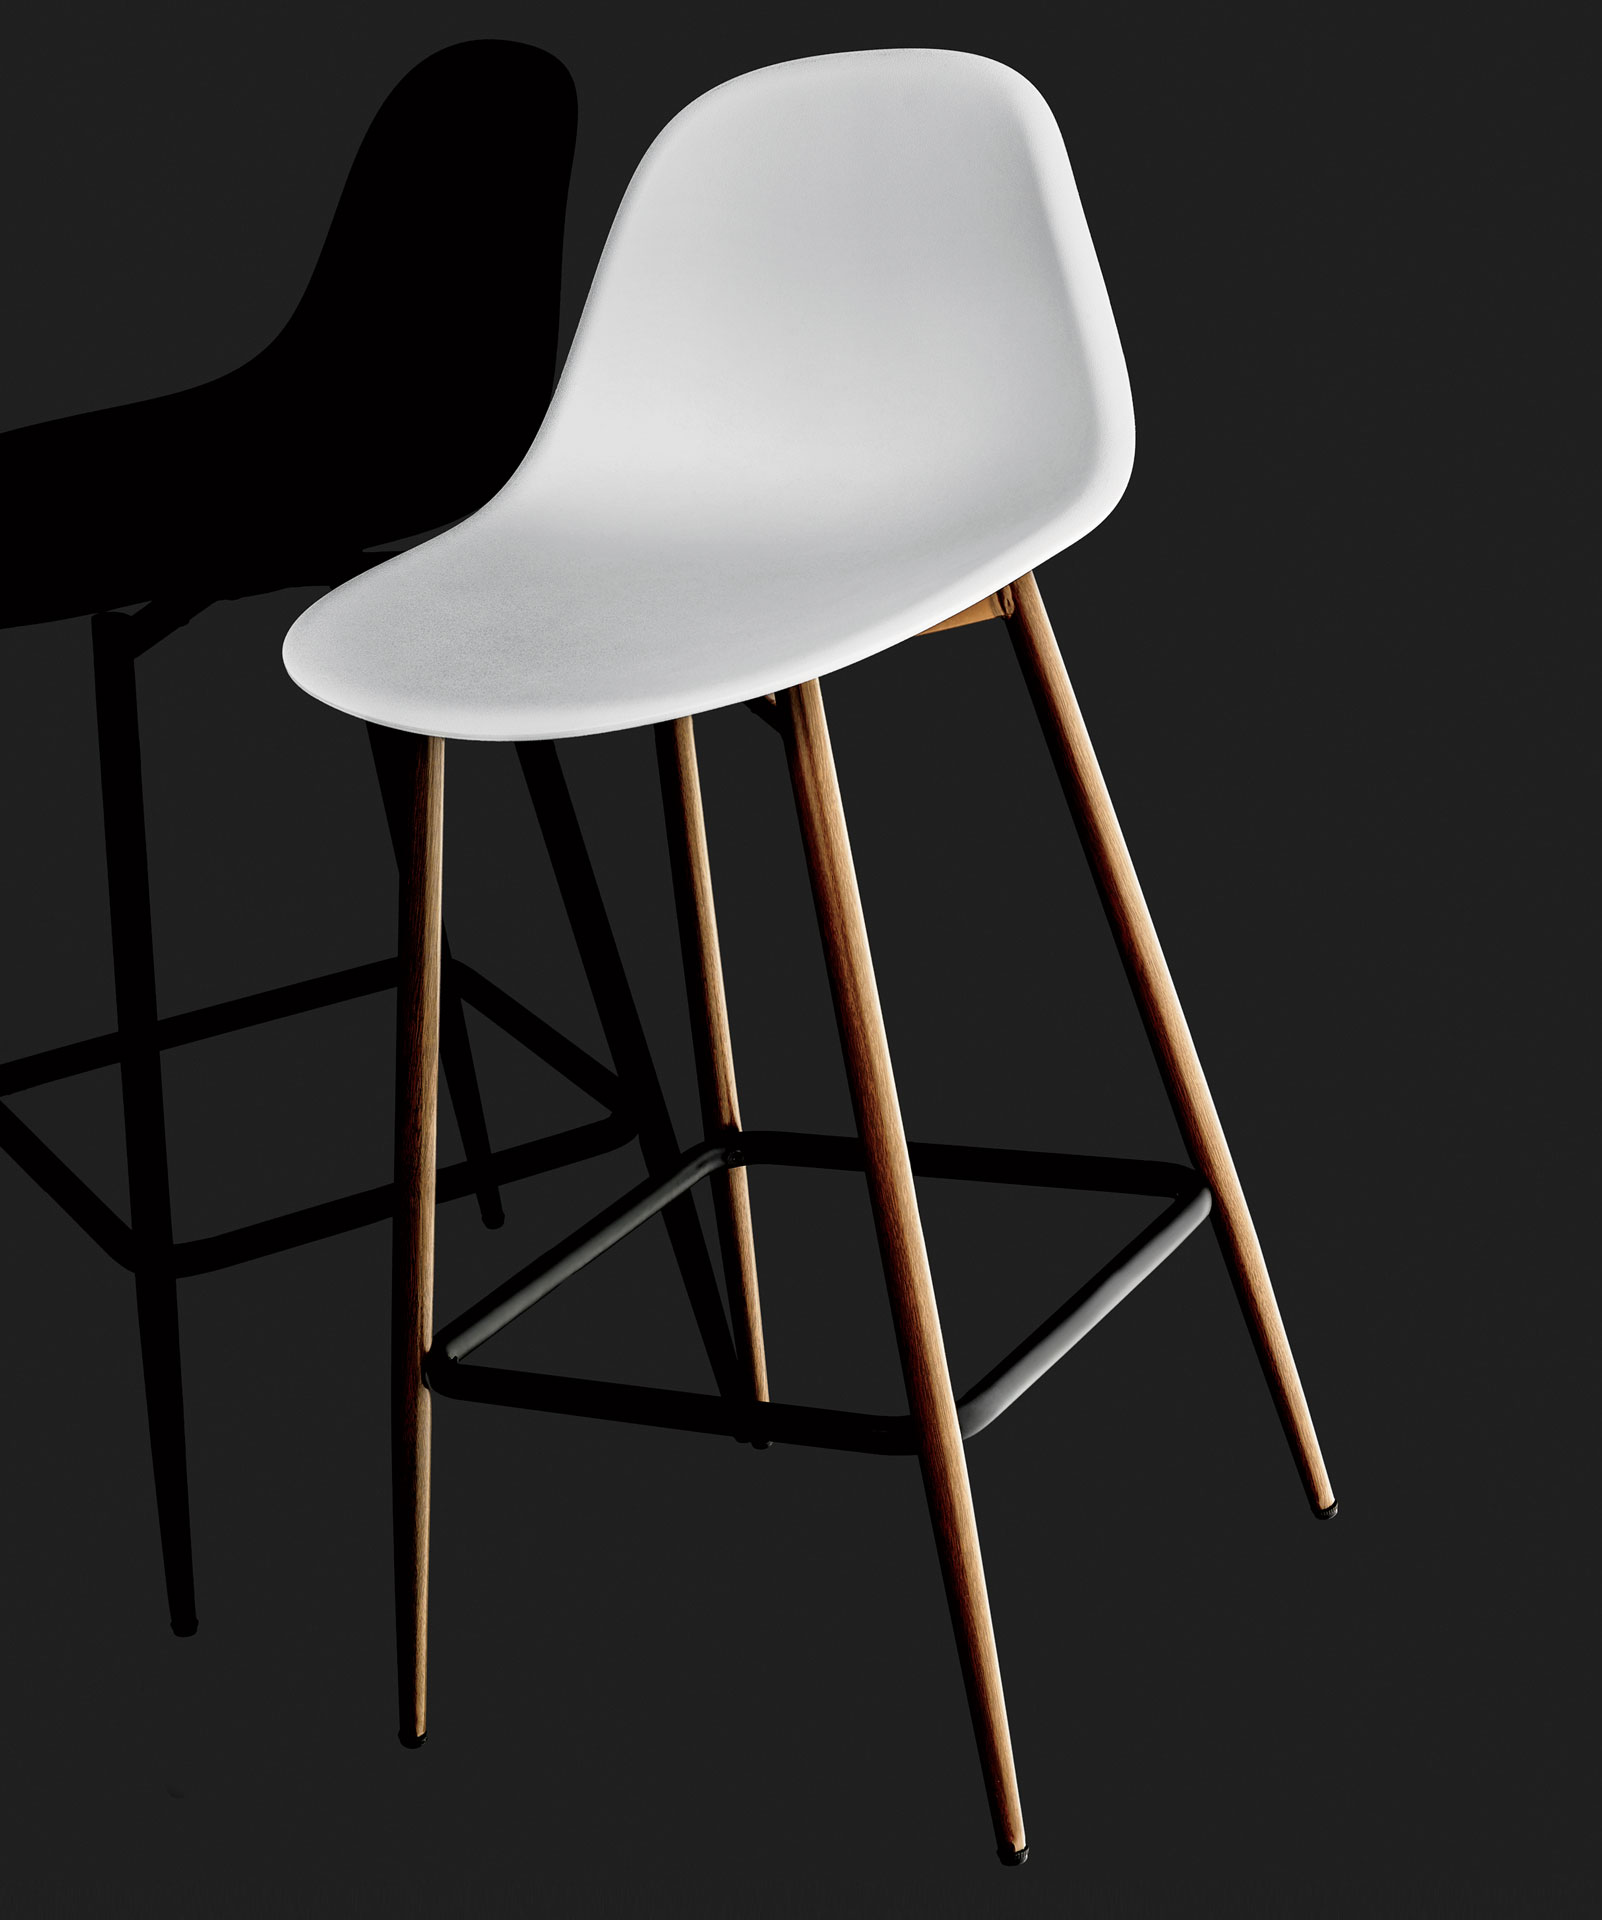 <p>Target's two-year-old Project 62 furniture line, which includes the Copley Plastic Counter Stool, has given the company new momentum.</p>